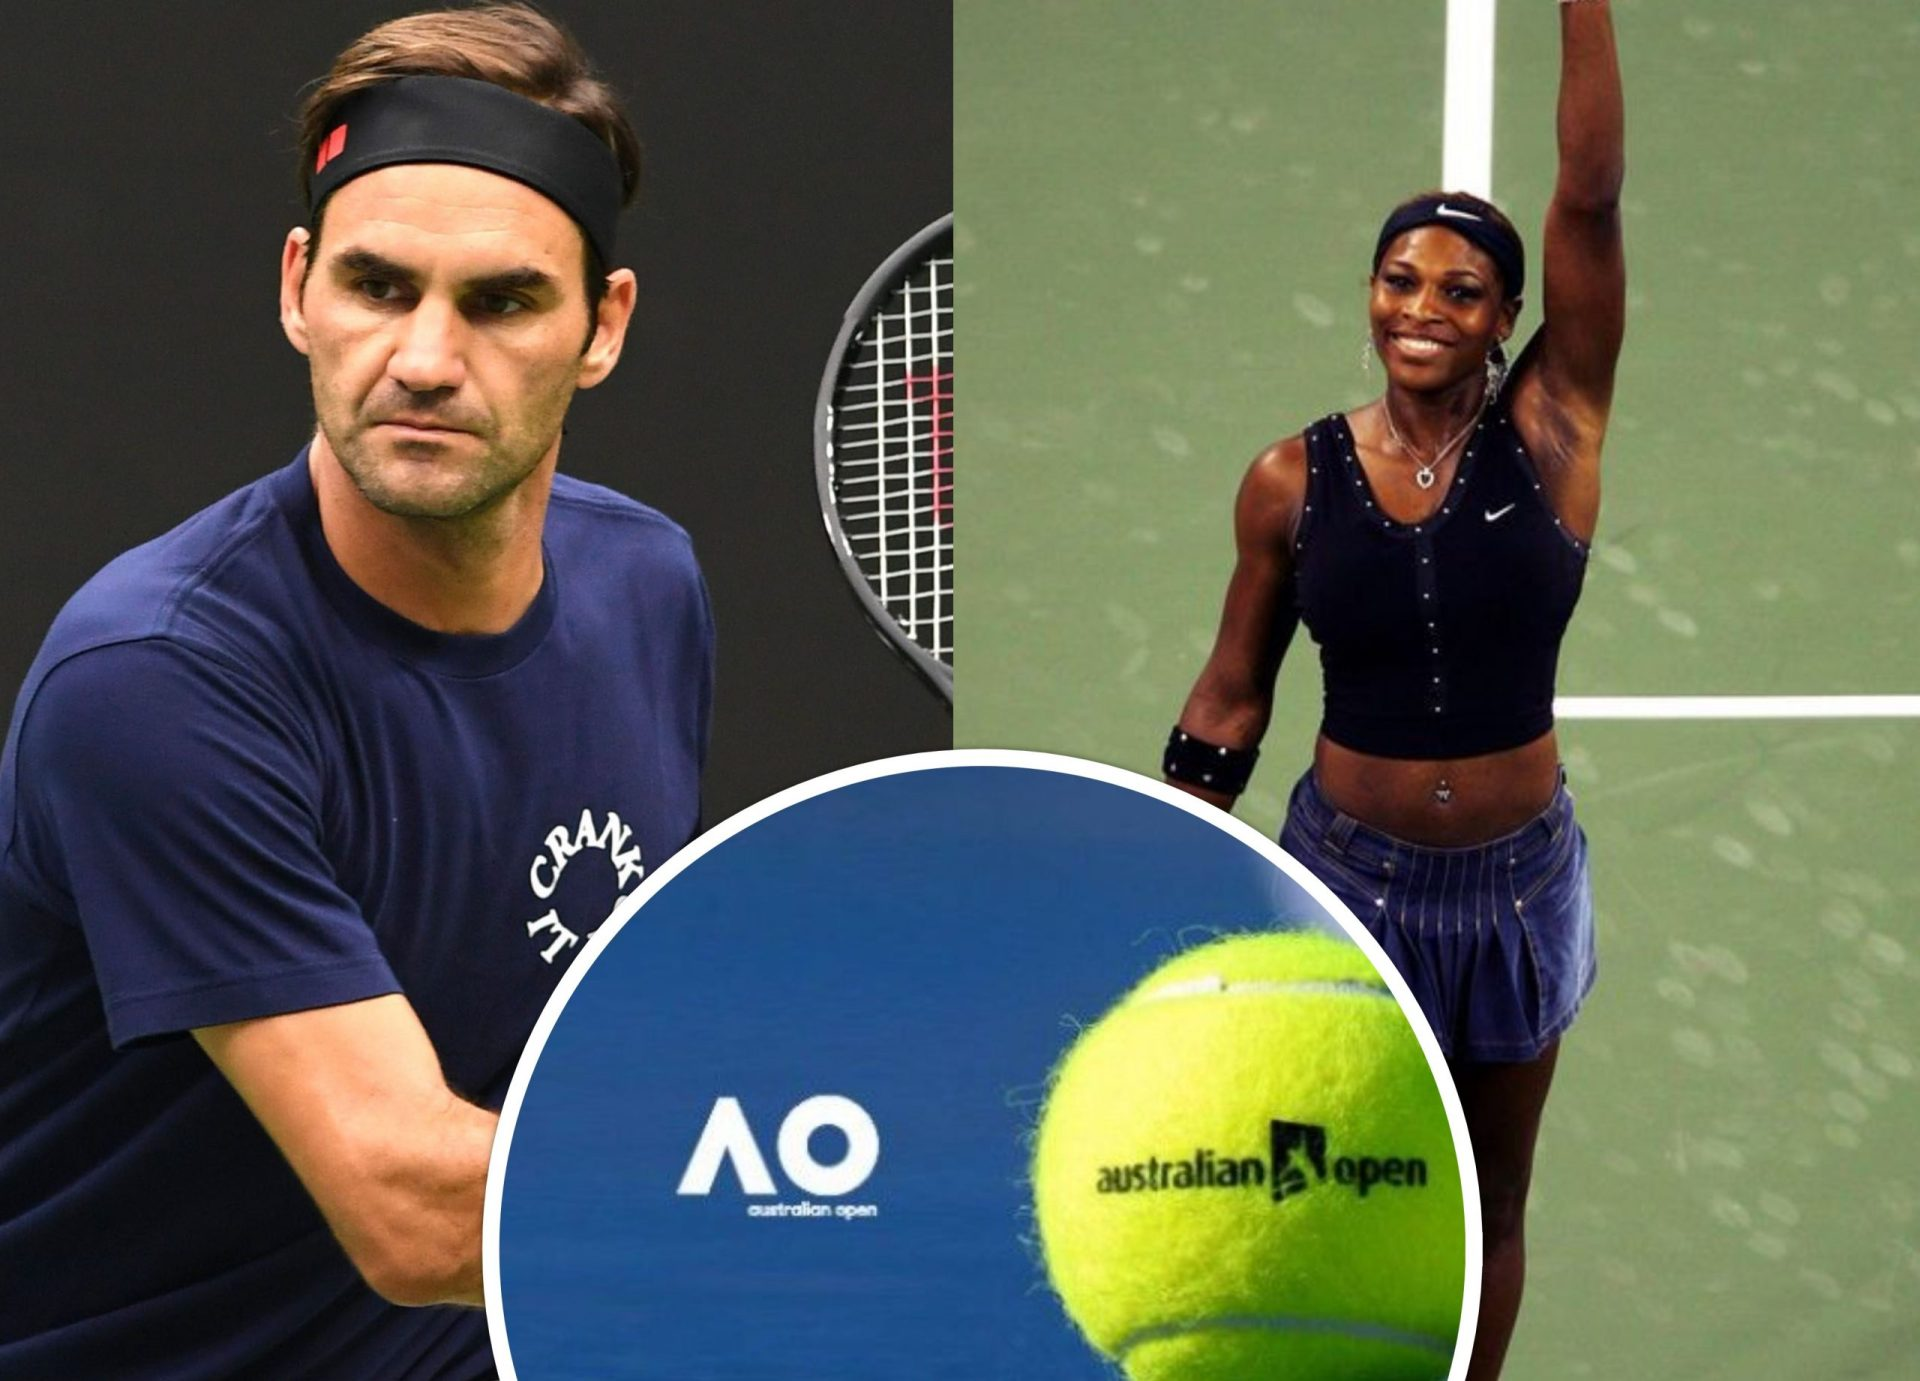 With love from Australia-Federer and Serena among entries for the Australian open - THE SPORTS ROOM